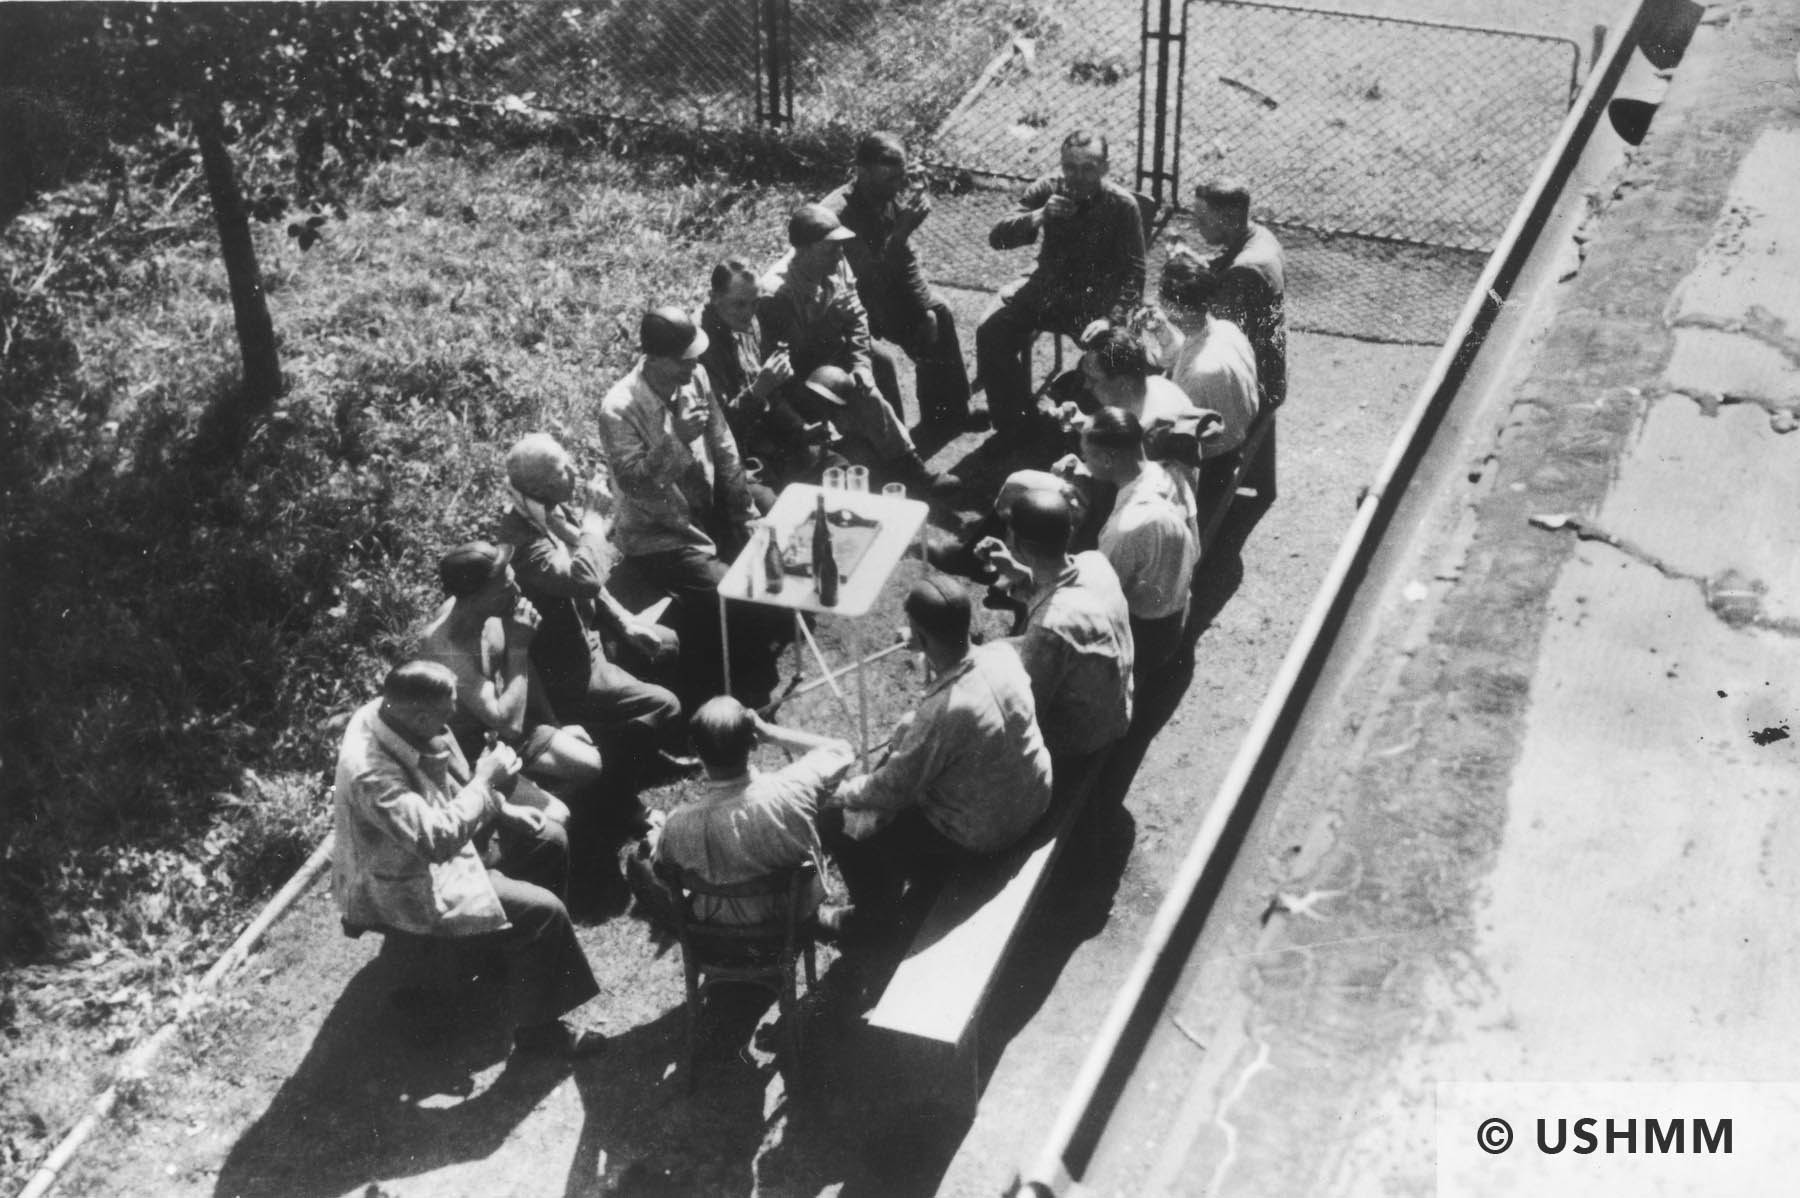 Auschwitz personnel, including many physicians, enjoy drinks at an outdoor table drinking following a visit to a coal mine. 1944 USHMM 34795